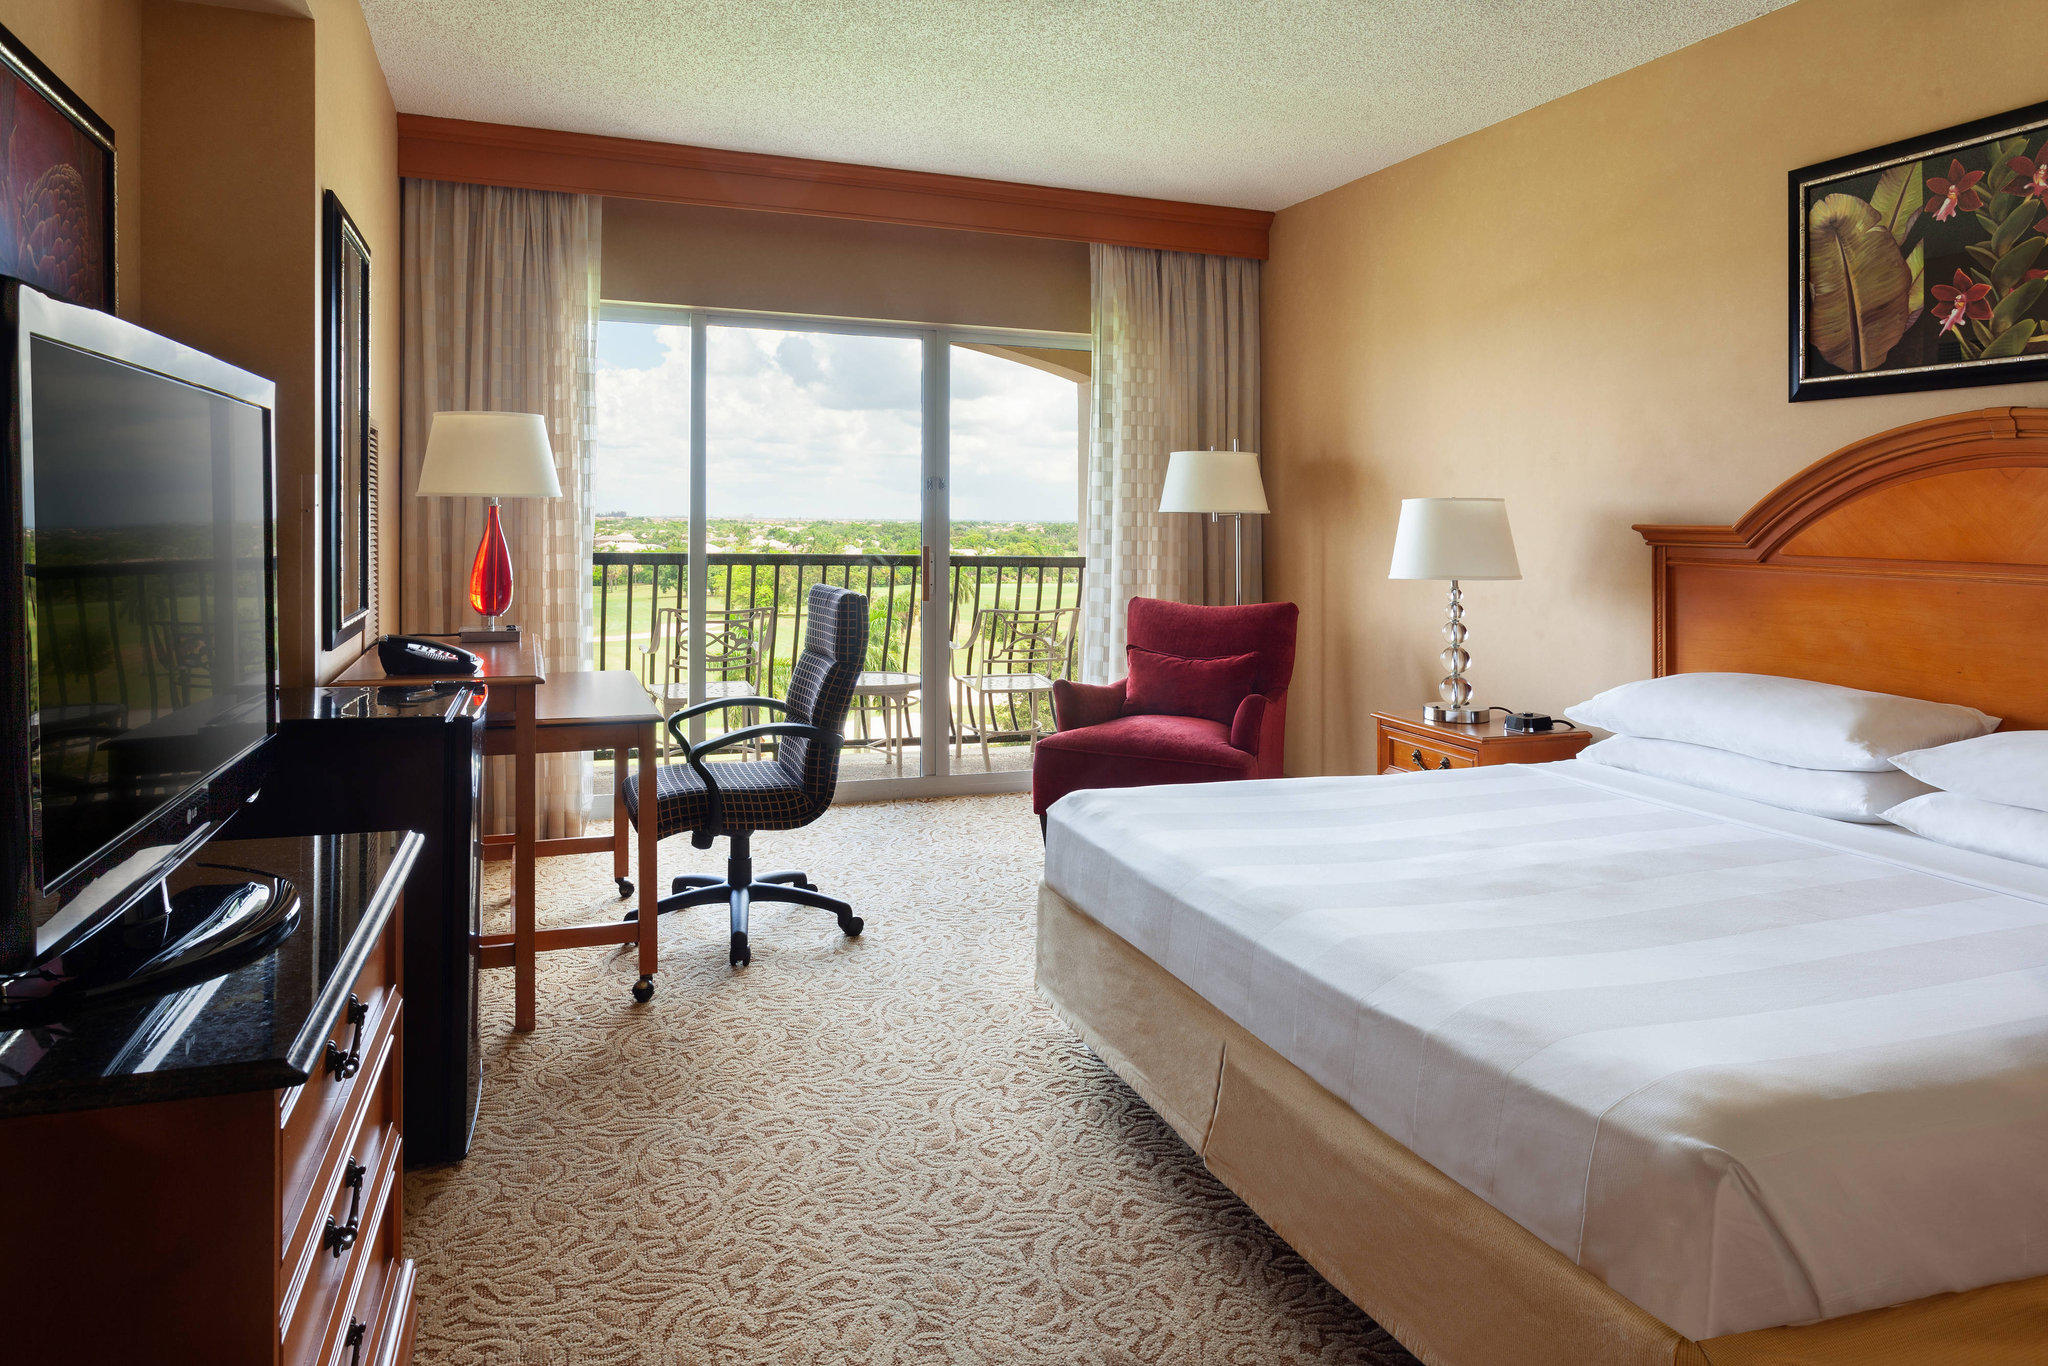 Fort Lauderdale Marriott Coral Springs Hotel & Convention Center